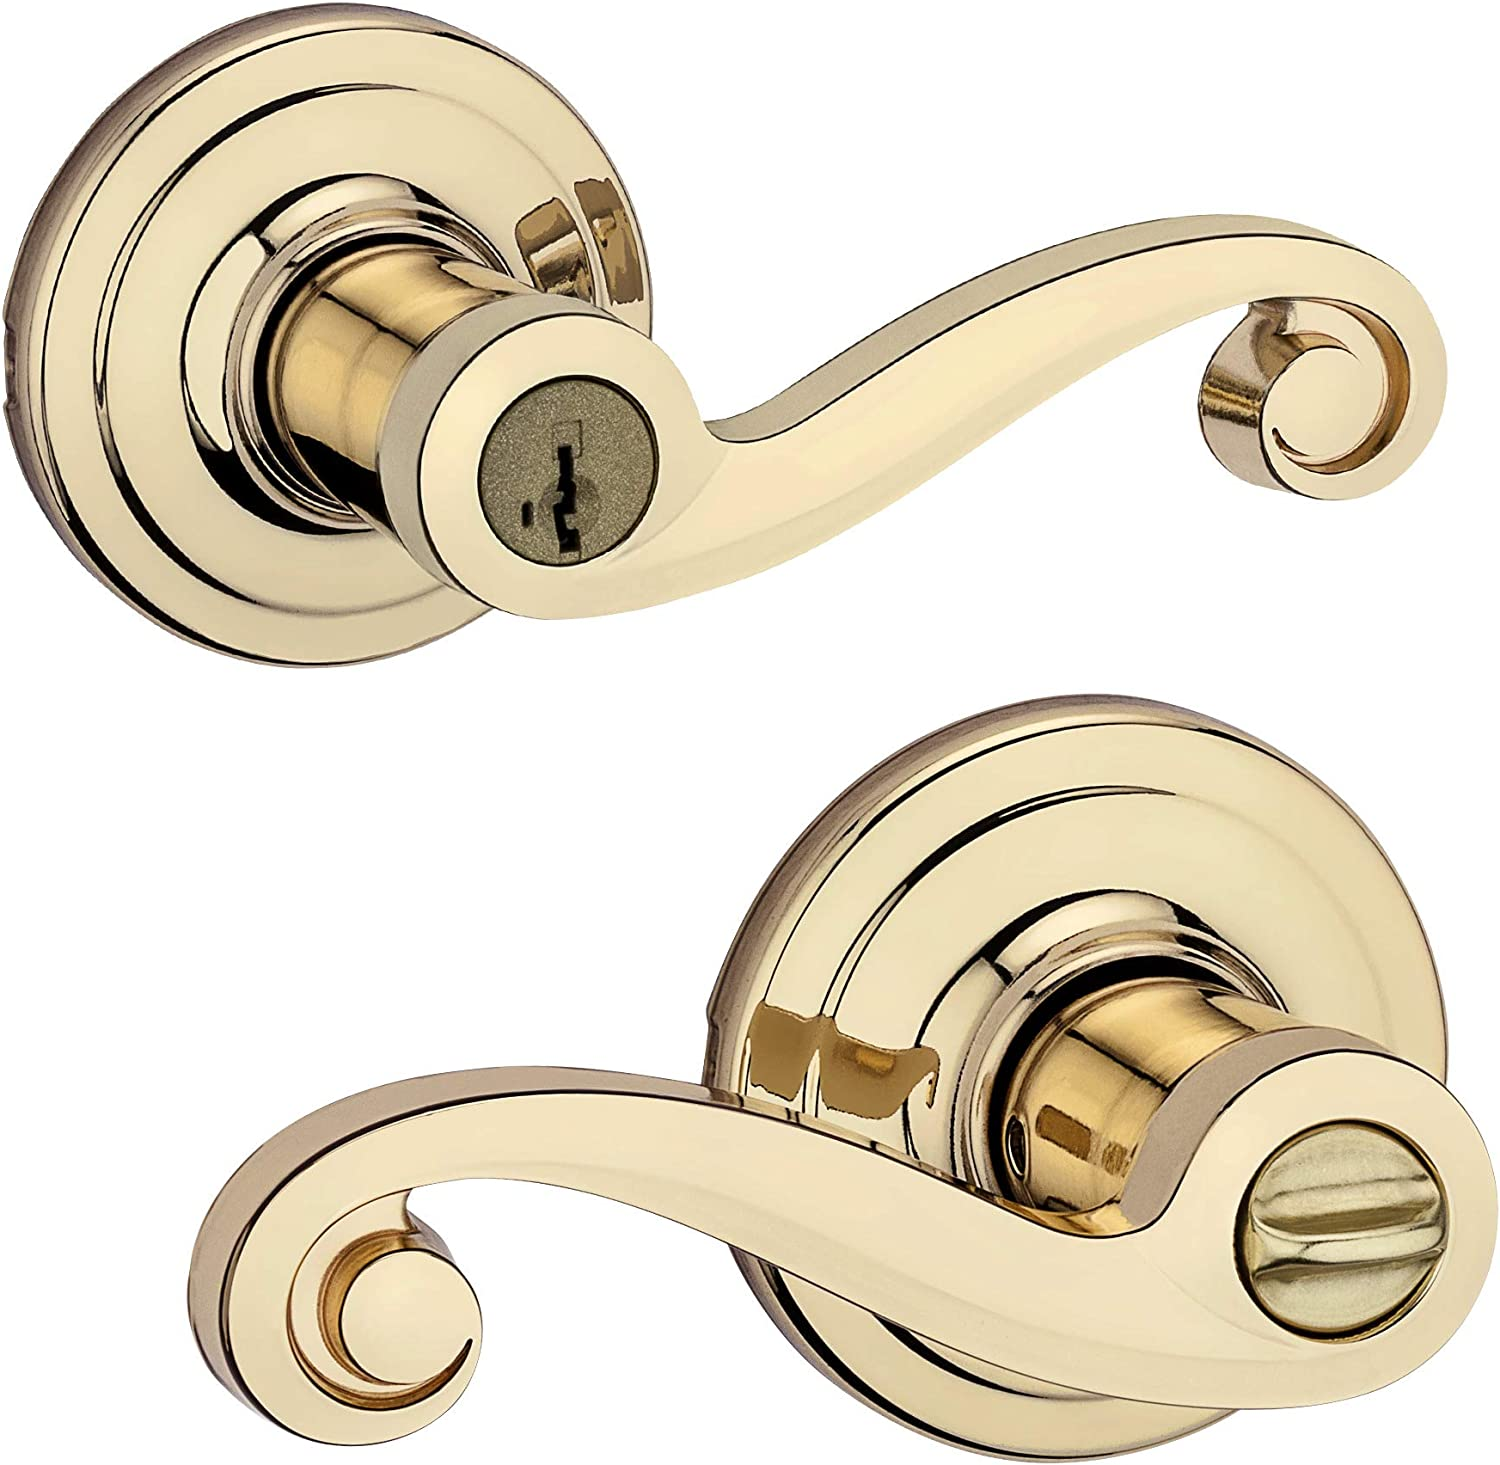 Lido Keyed Entry Lever with Microban Antimicrobial Protection featuring SmartKey Security in Polished Brass